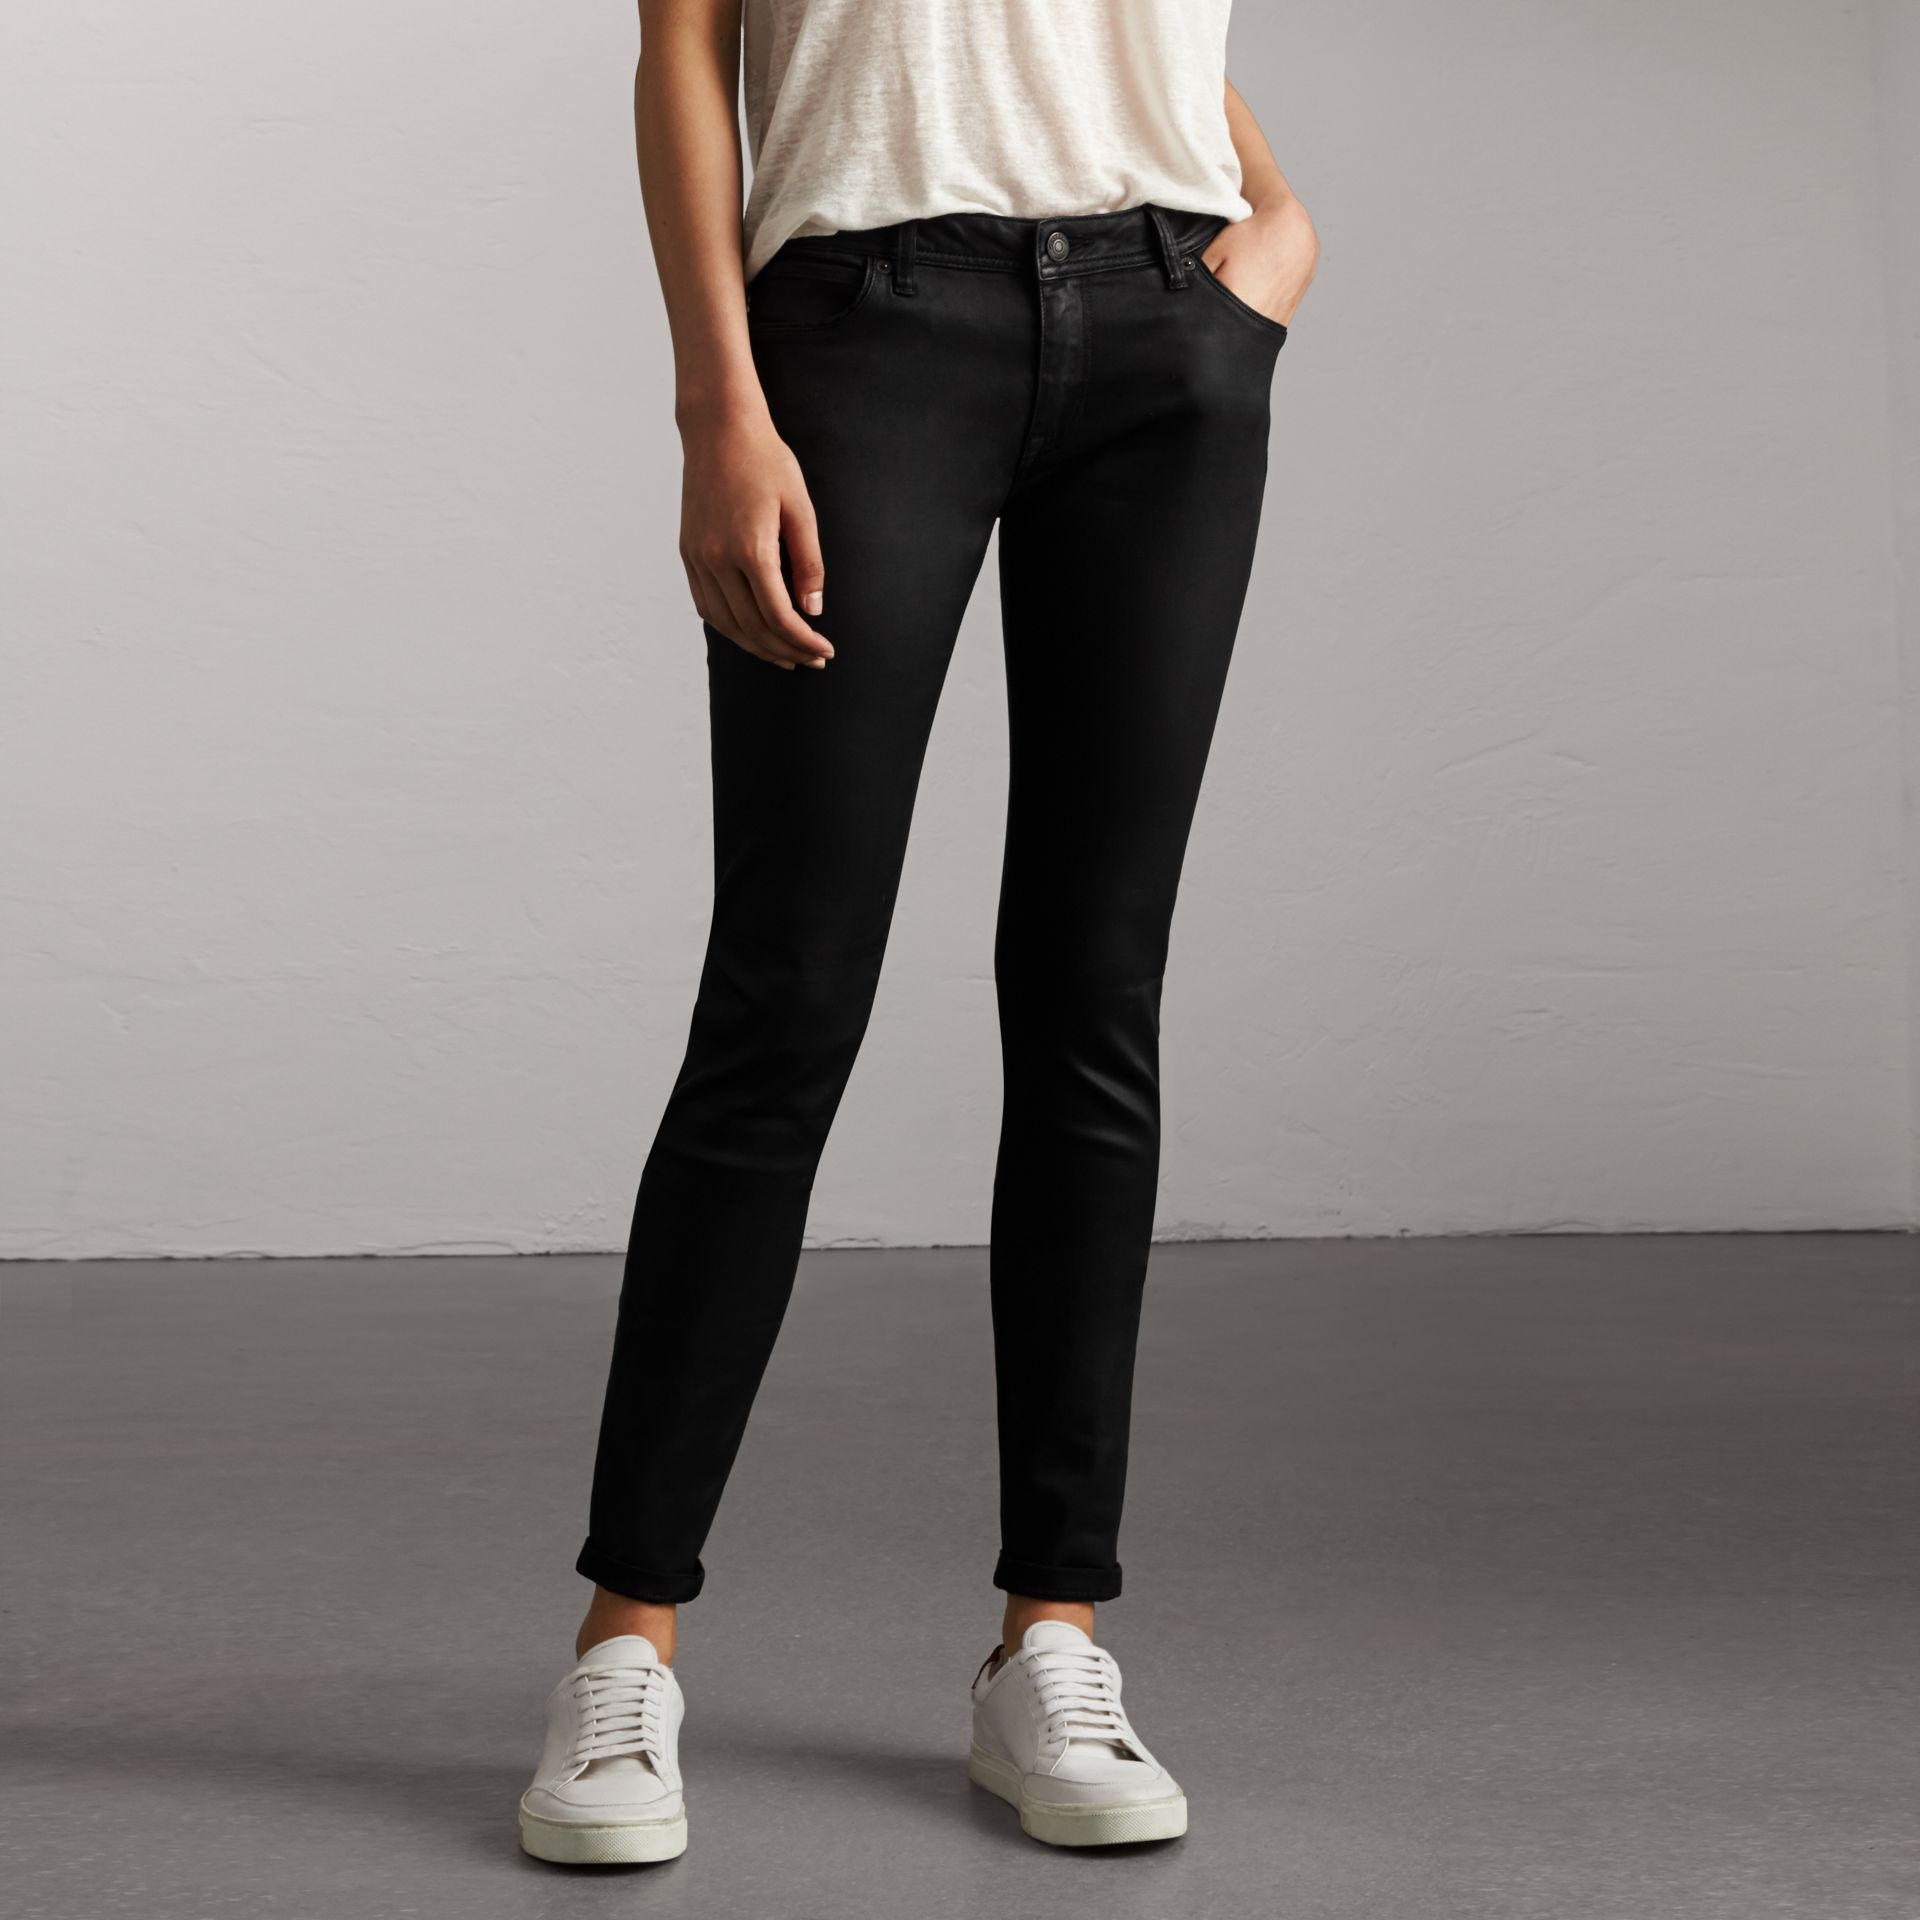 Skinny Fit Low-rise Wax Coated Jeans in Black - Women | Burberry - gallery image 0